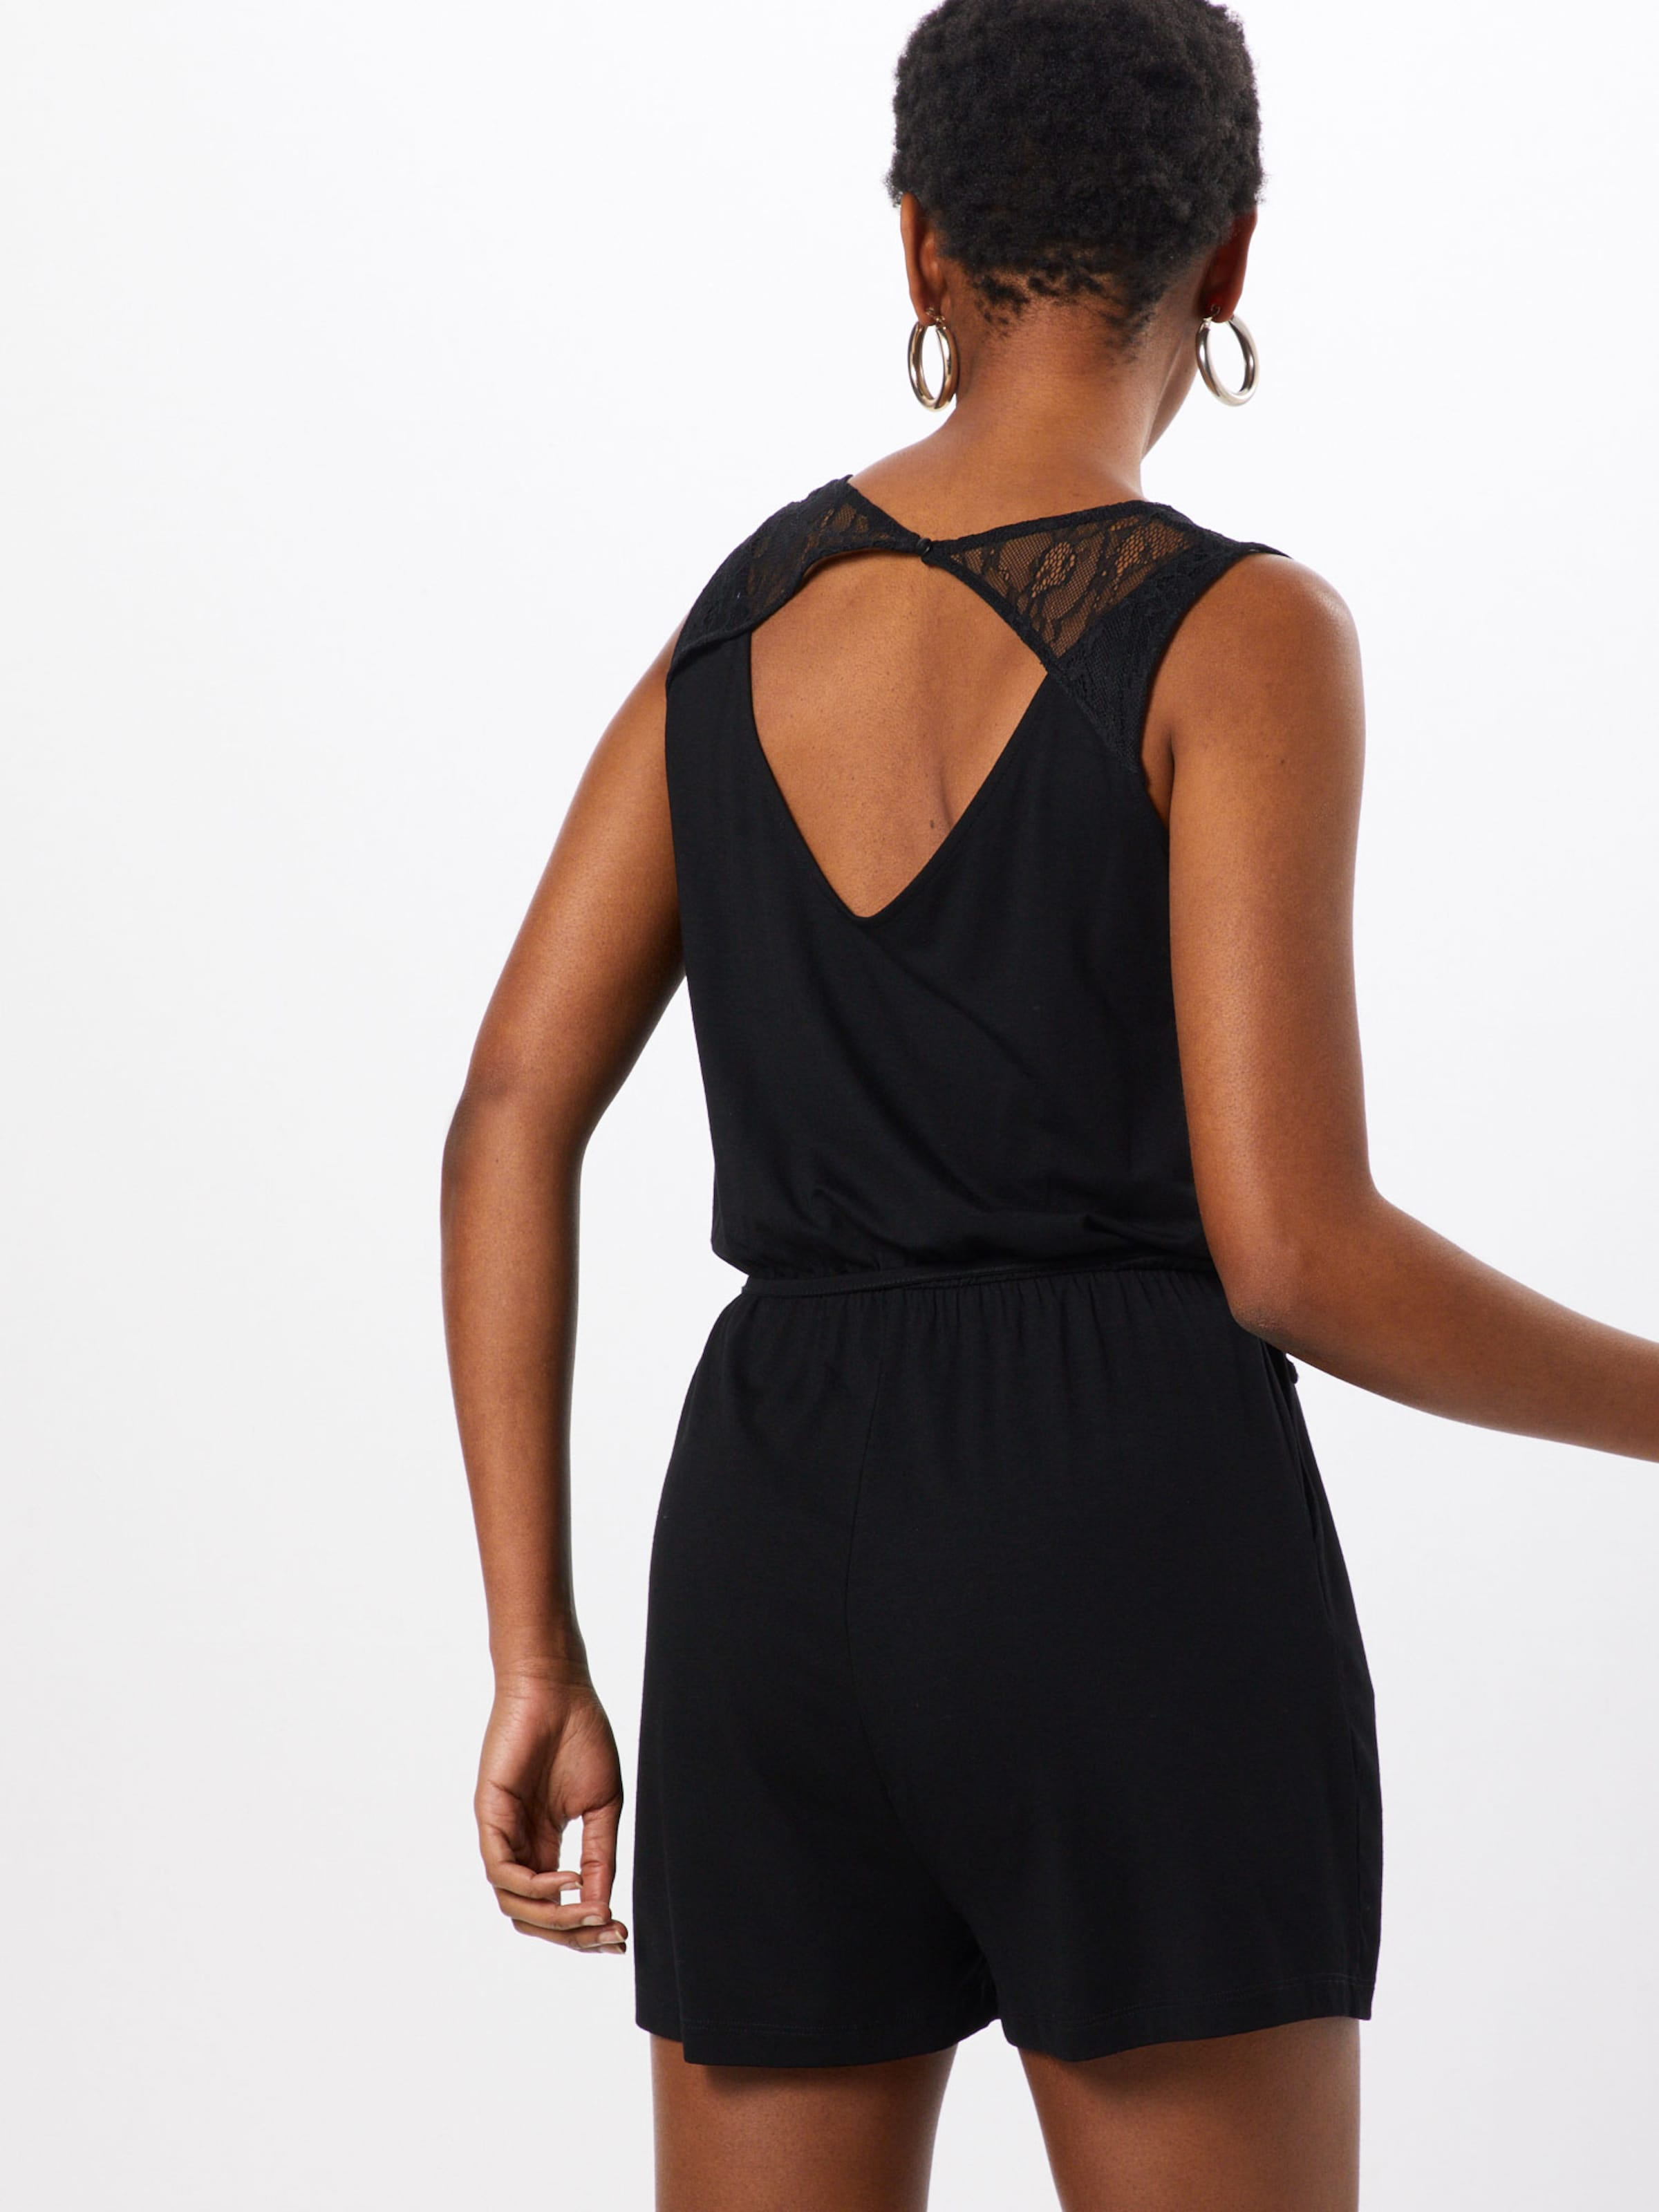 You 'perle' Schwarz Jumpsuit In About edxoWBrC